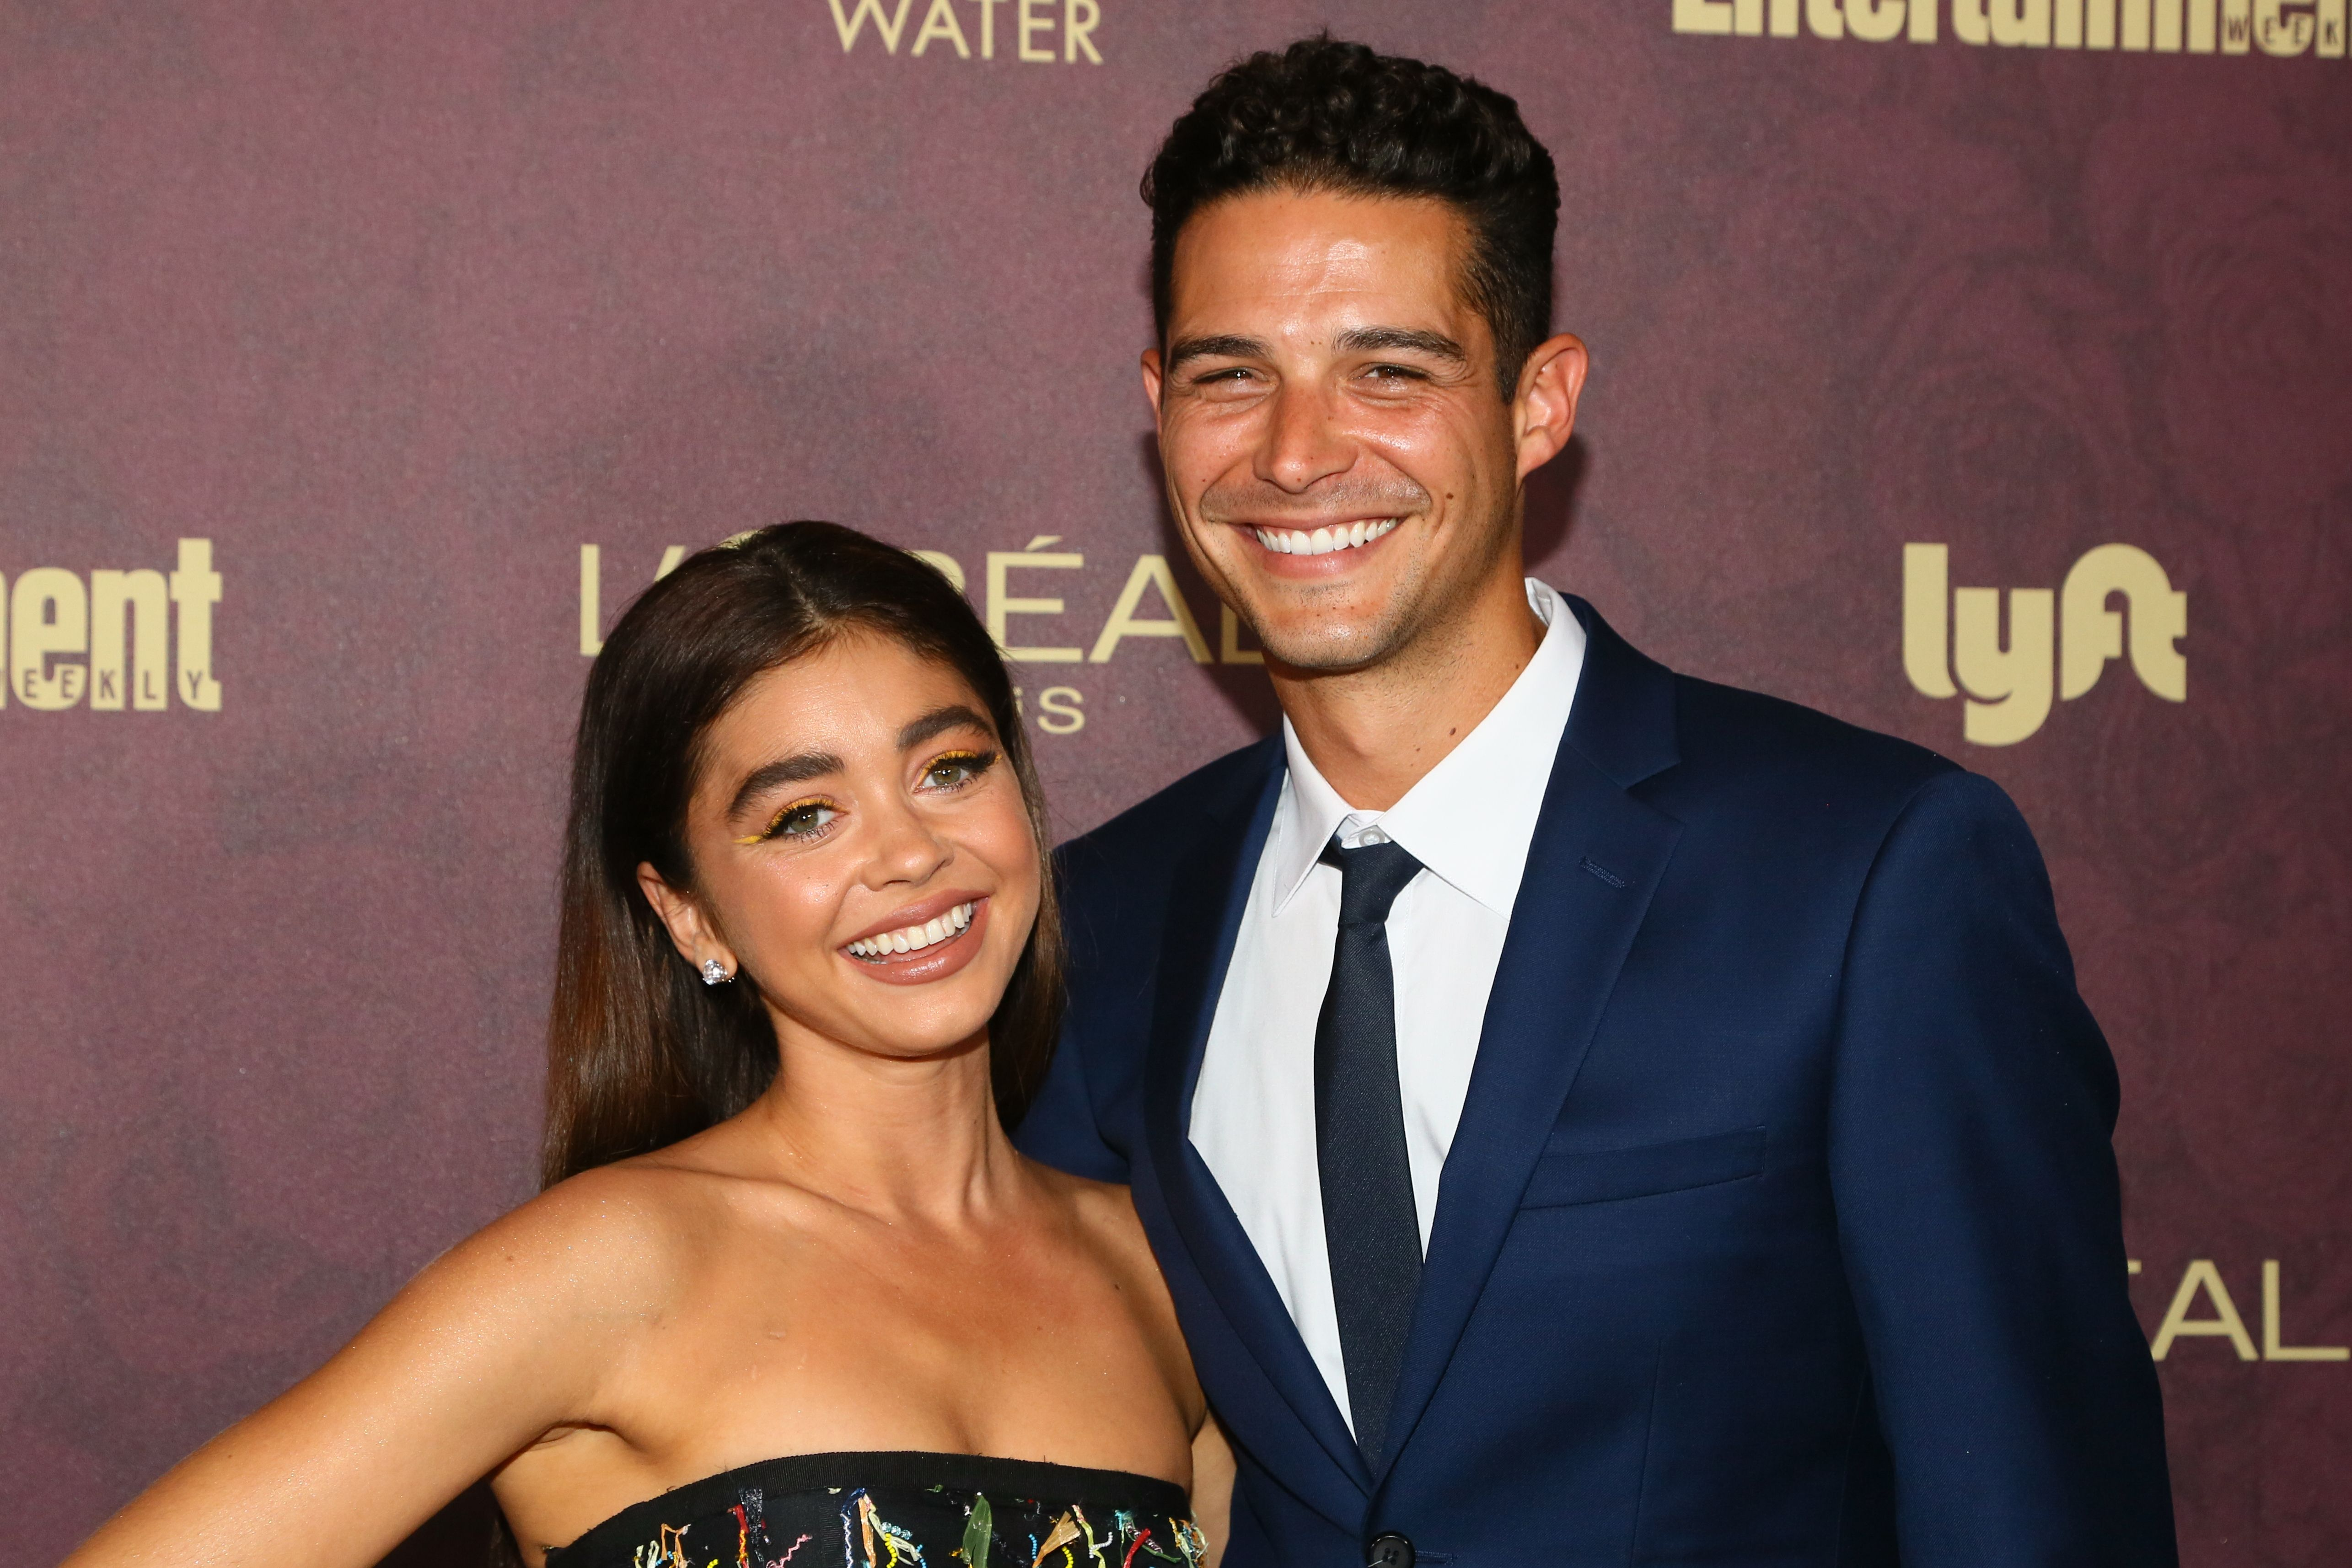 Sarah Hyland and Wells Adams at the 2018 Entertainment Weekly Pre-Emmy Party at Sunset Tower Hotel on September 15, 2018 | Photo: Getty Images